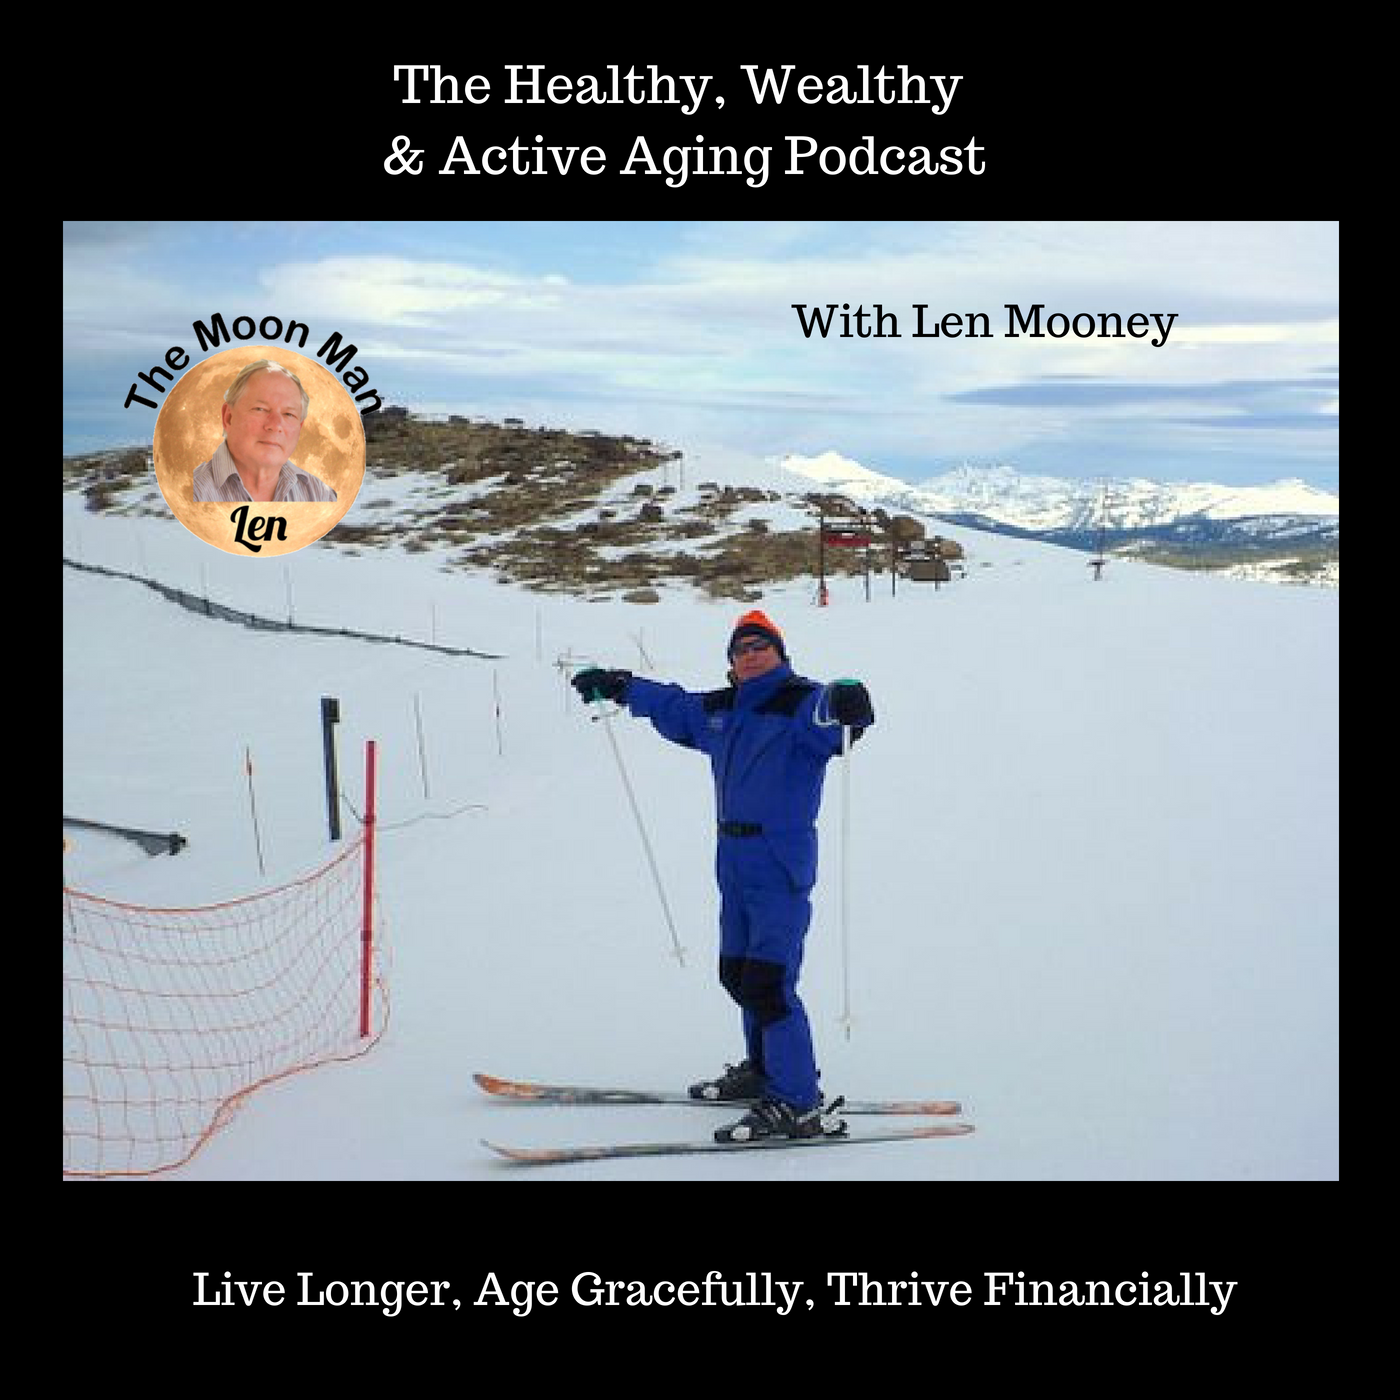 The Healthy, Wealthy & Active  Aging Podcast show art